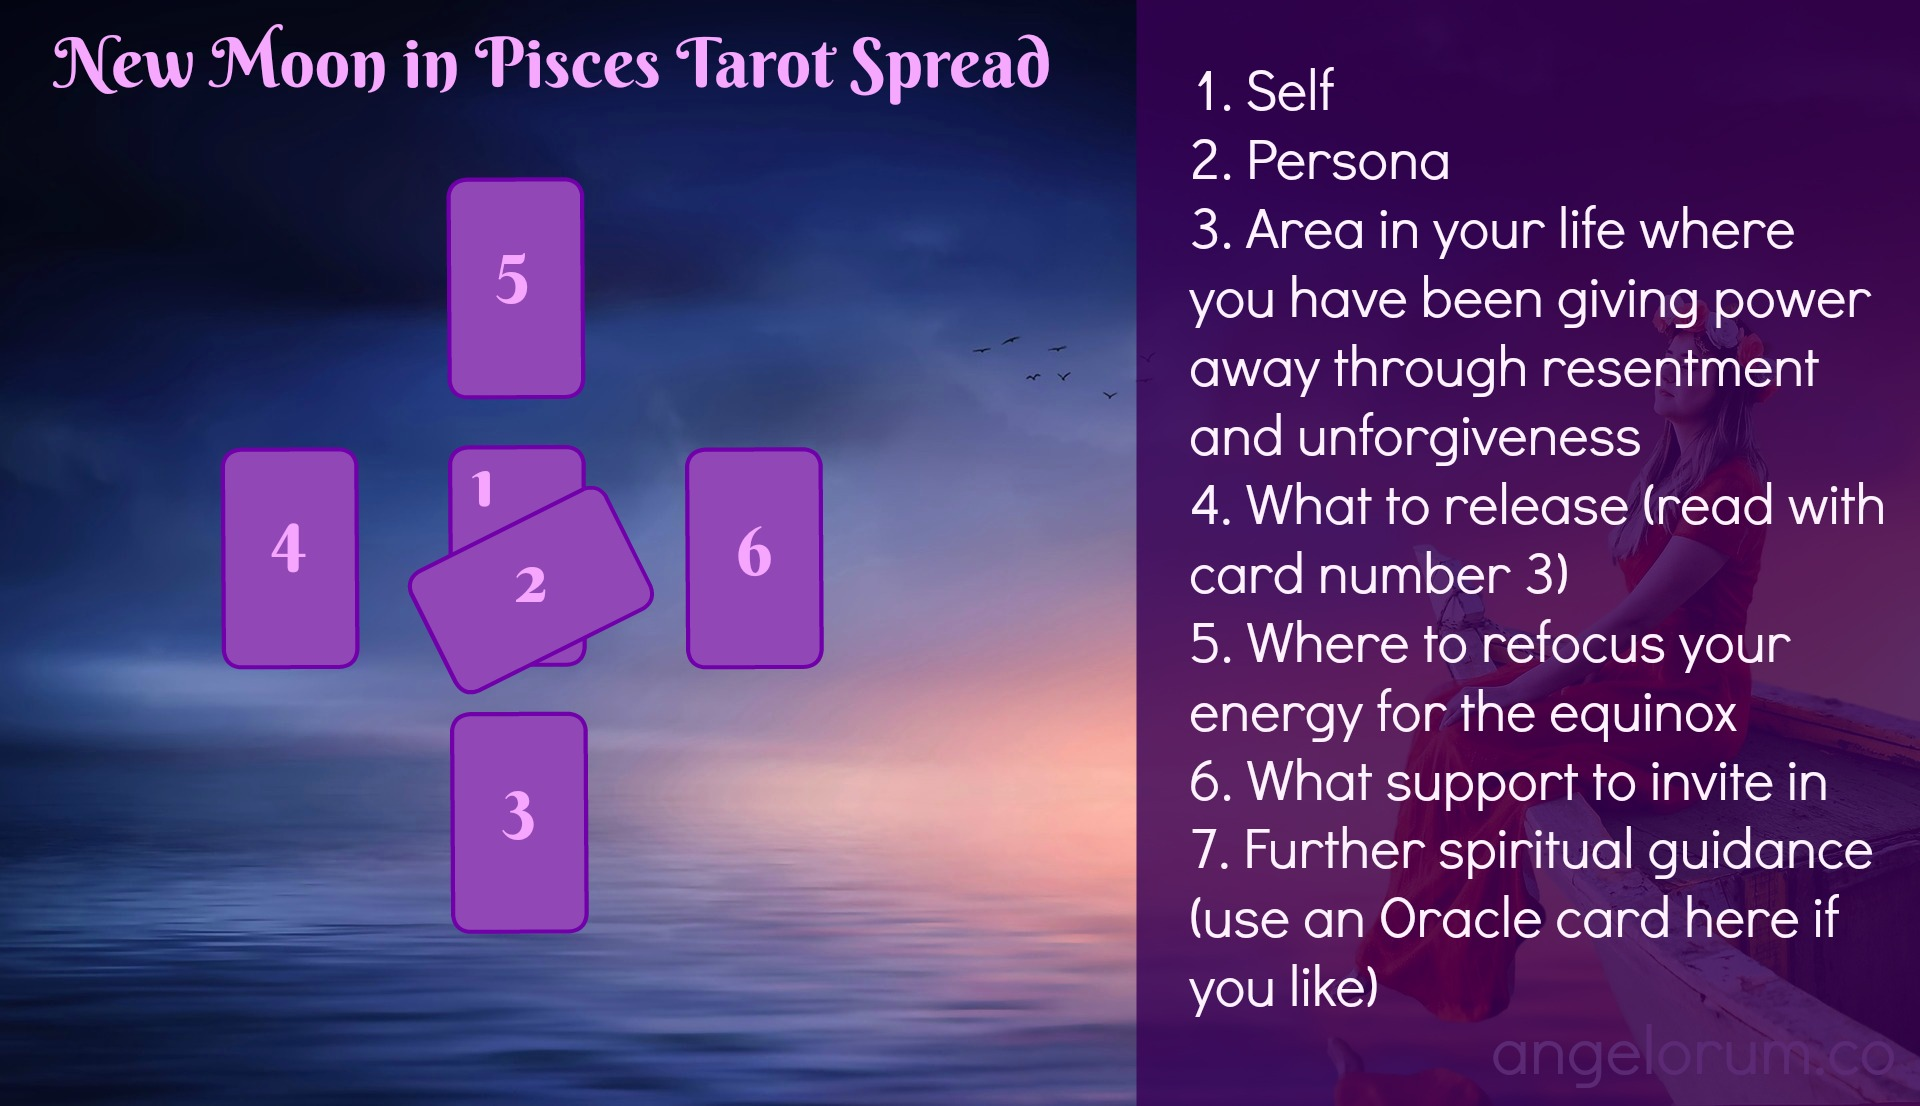 New Moon in Pisces Tarot Spread 2018